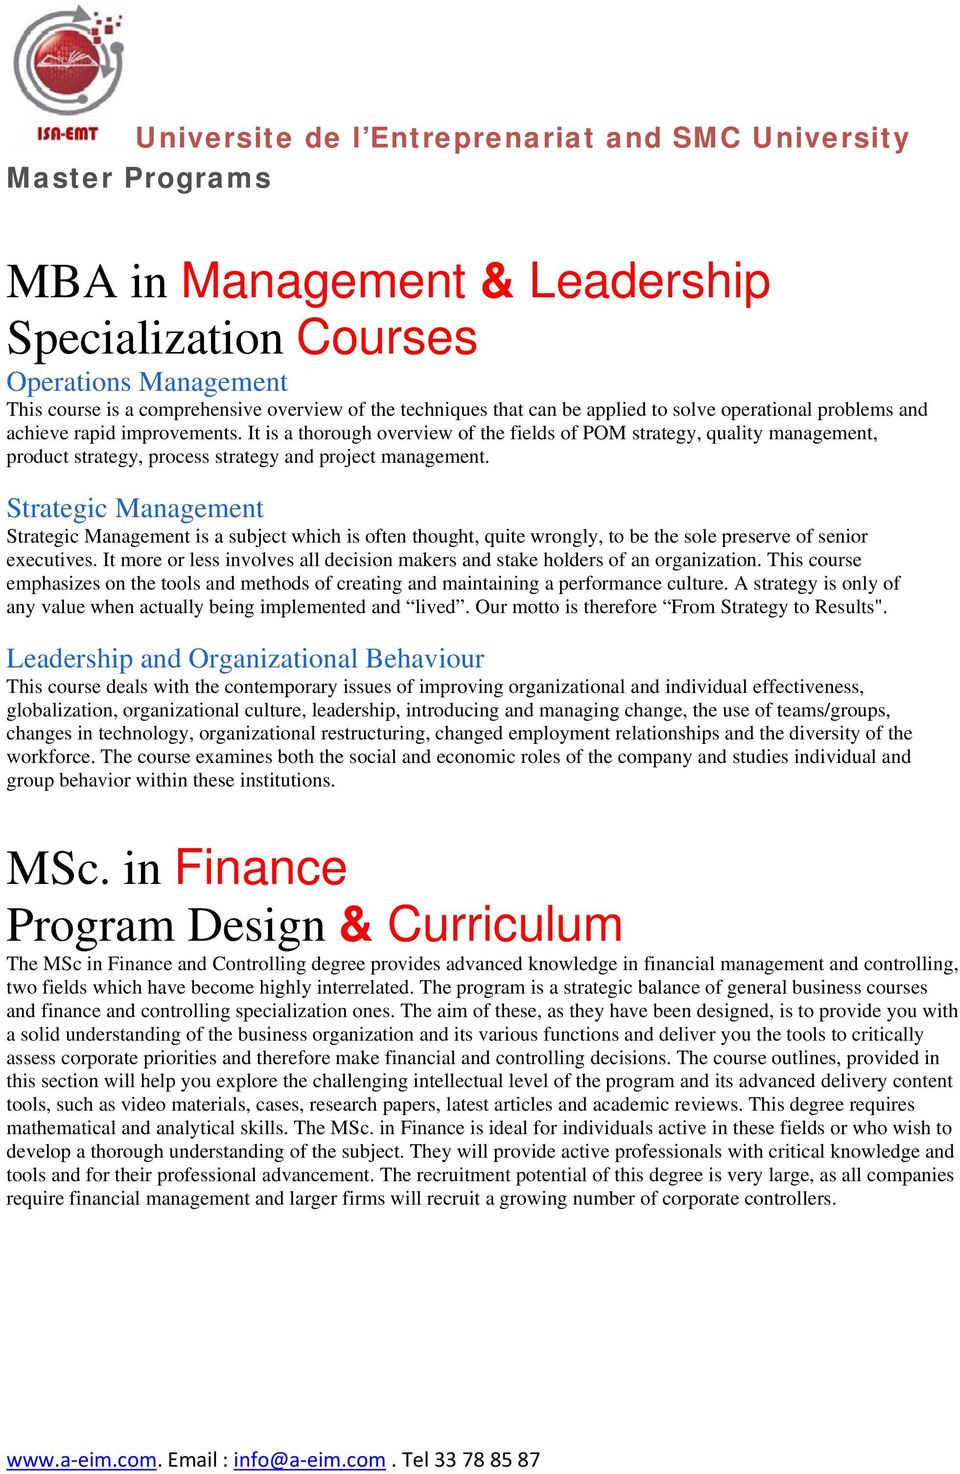 Dissertation Proposal For Mba Finance